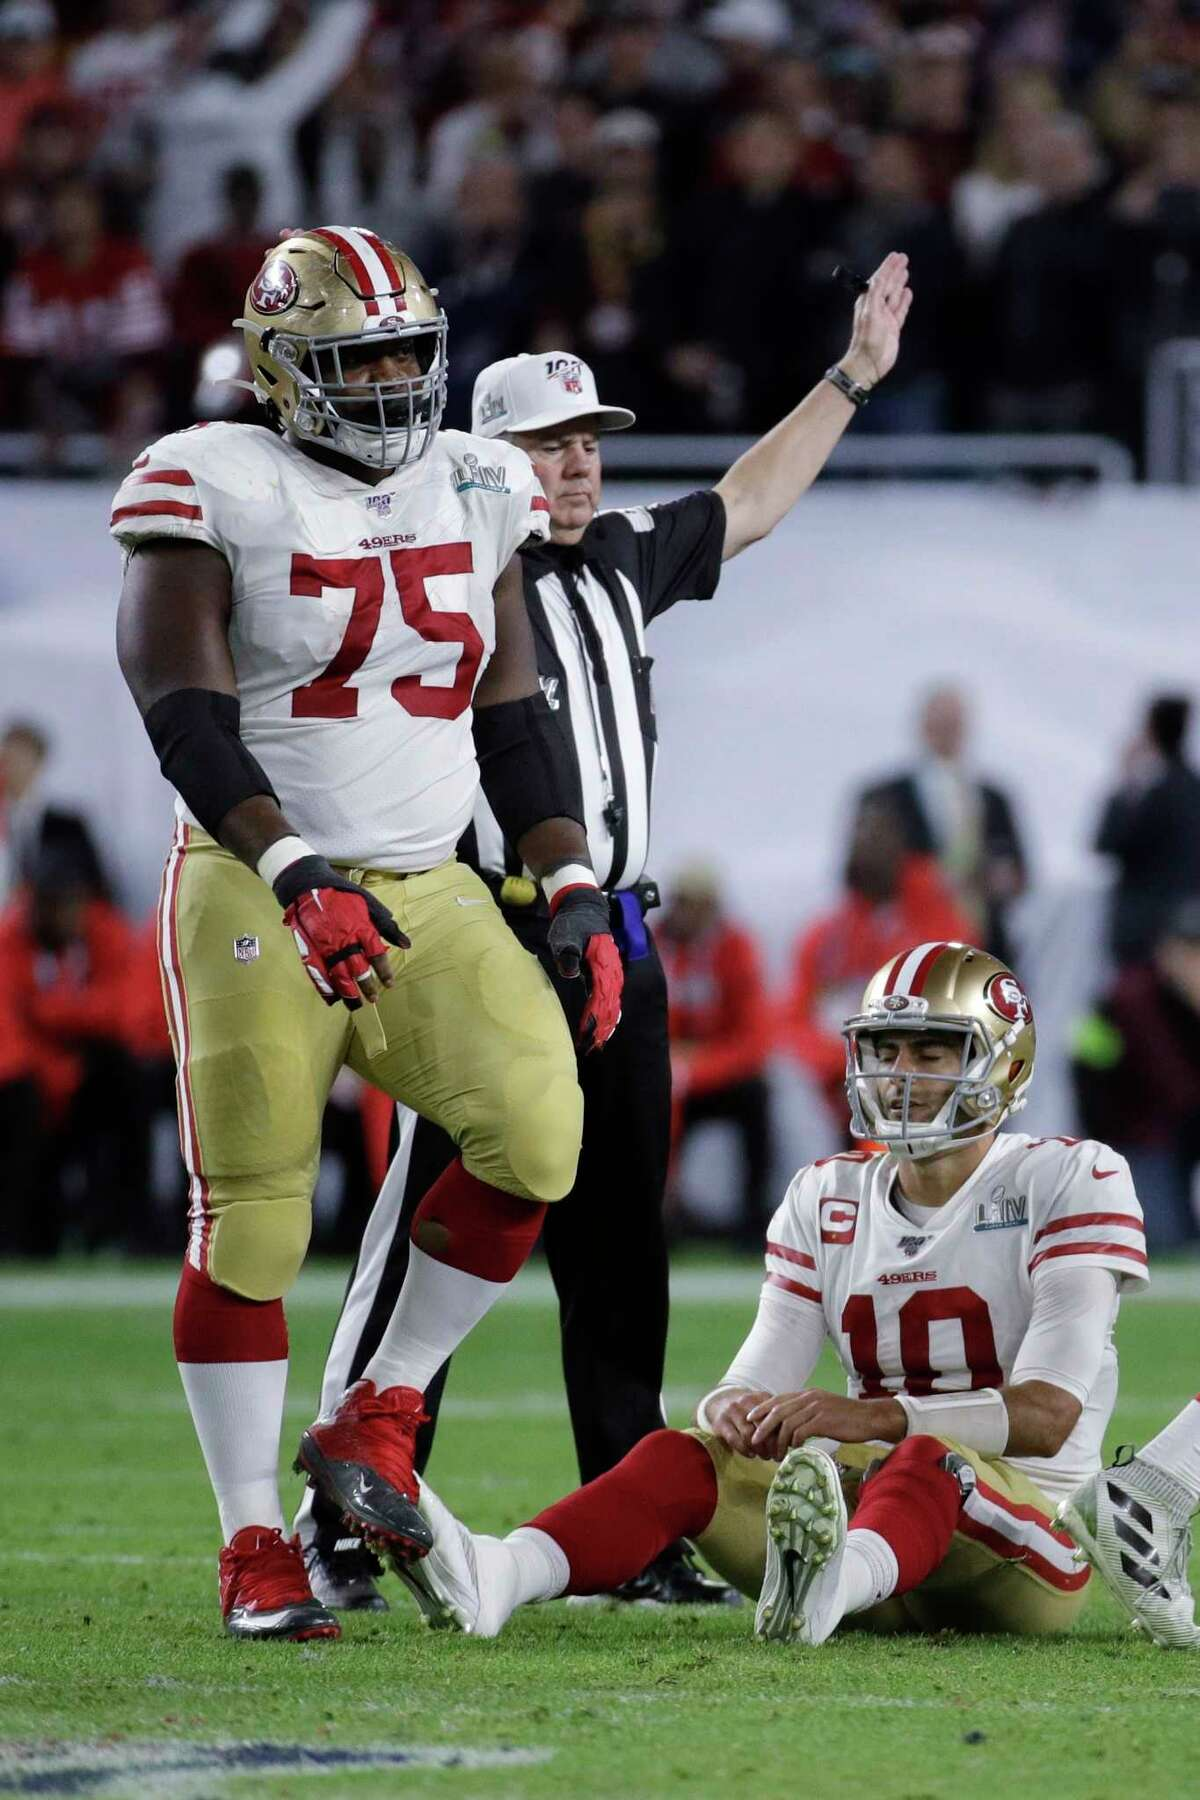 San Francisco 49ers quarterback Jimmy Garoppolo (10) reacts after turning the ball over on downs during the second half of the NFL Super Bowl 54 football game against the Kansas City Chiefs Sunday, Feb. 2, 2020, in Miami Gardens, Fla. (AP Photo/Patrick Semansky)